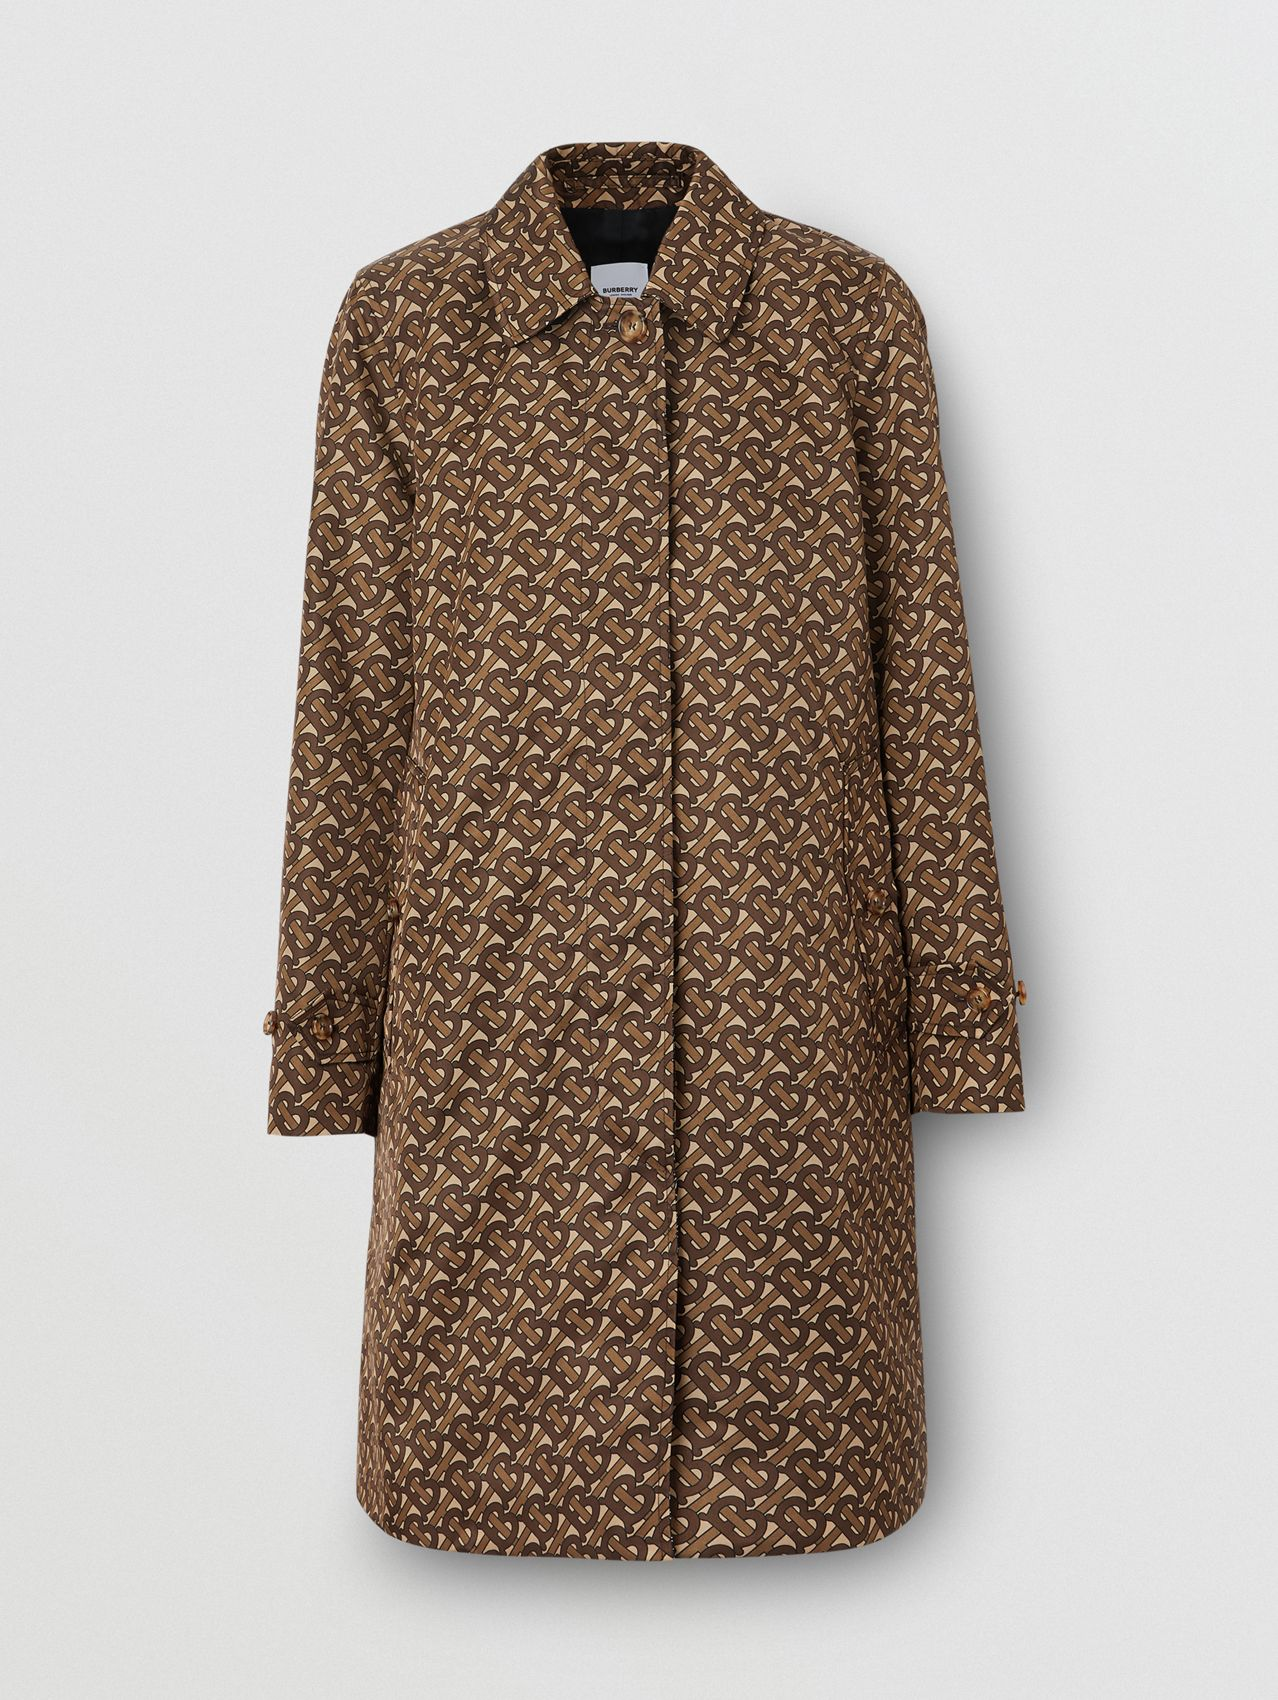 Monogram Stripe Print Nylon Car Coat in Bridle Brown